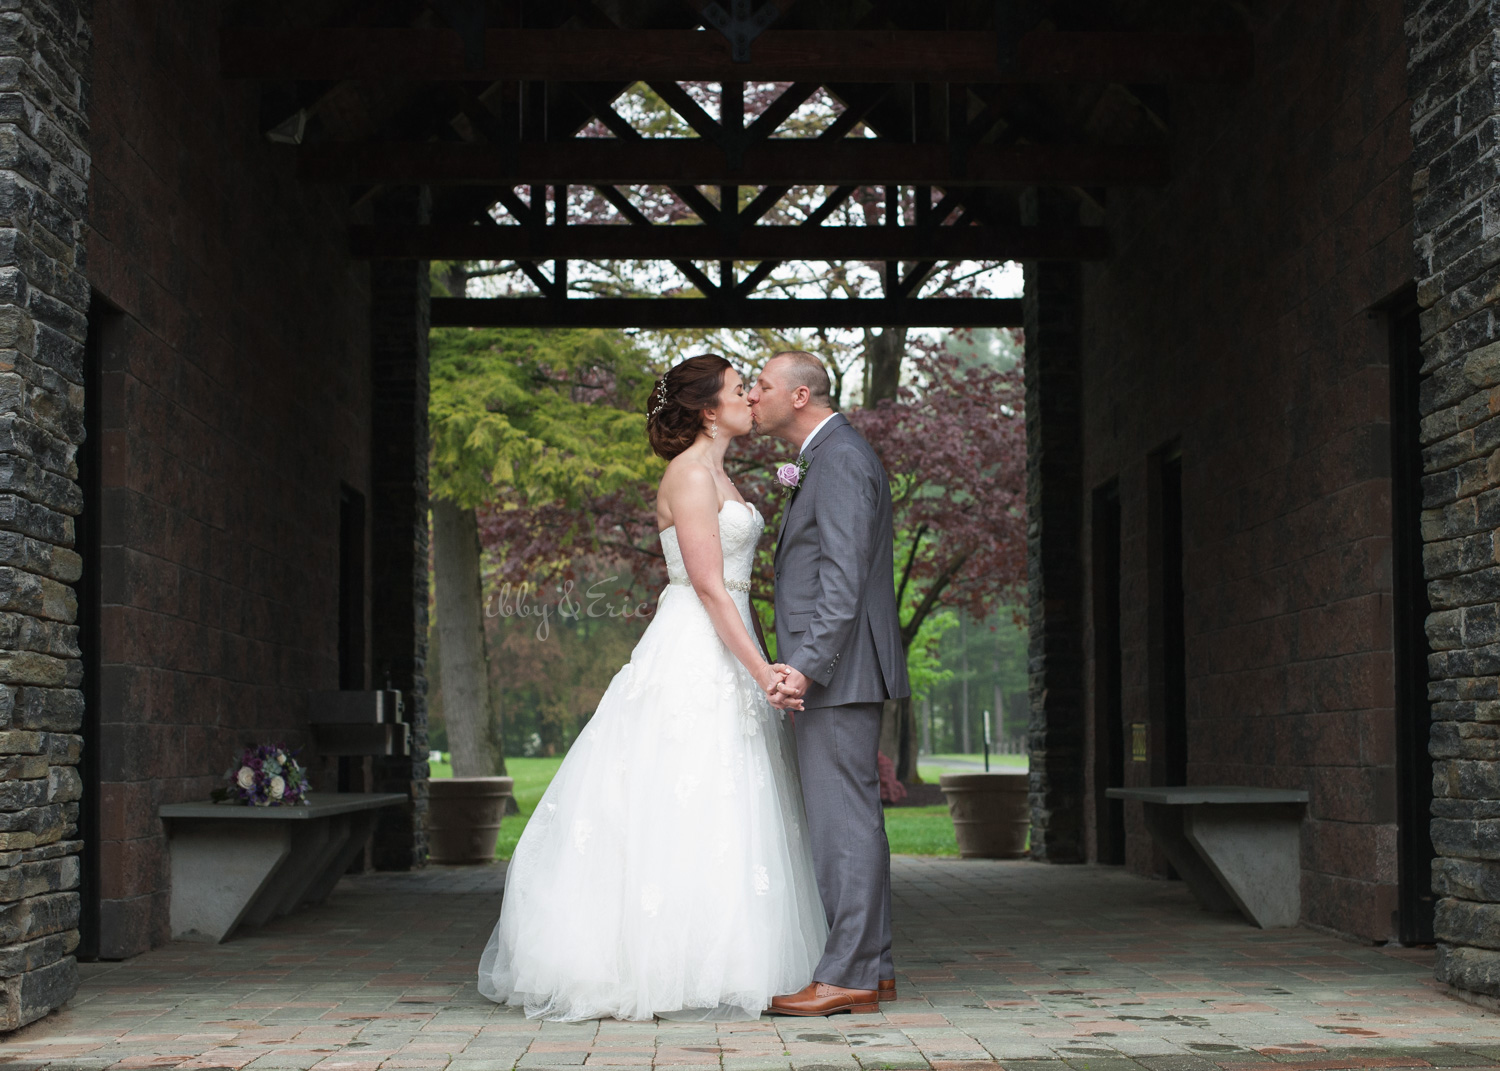 Bride and groom hold hands and kiss in a covered building on a rainy wedding day.